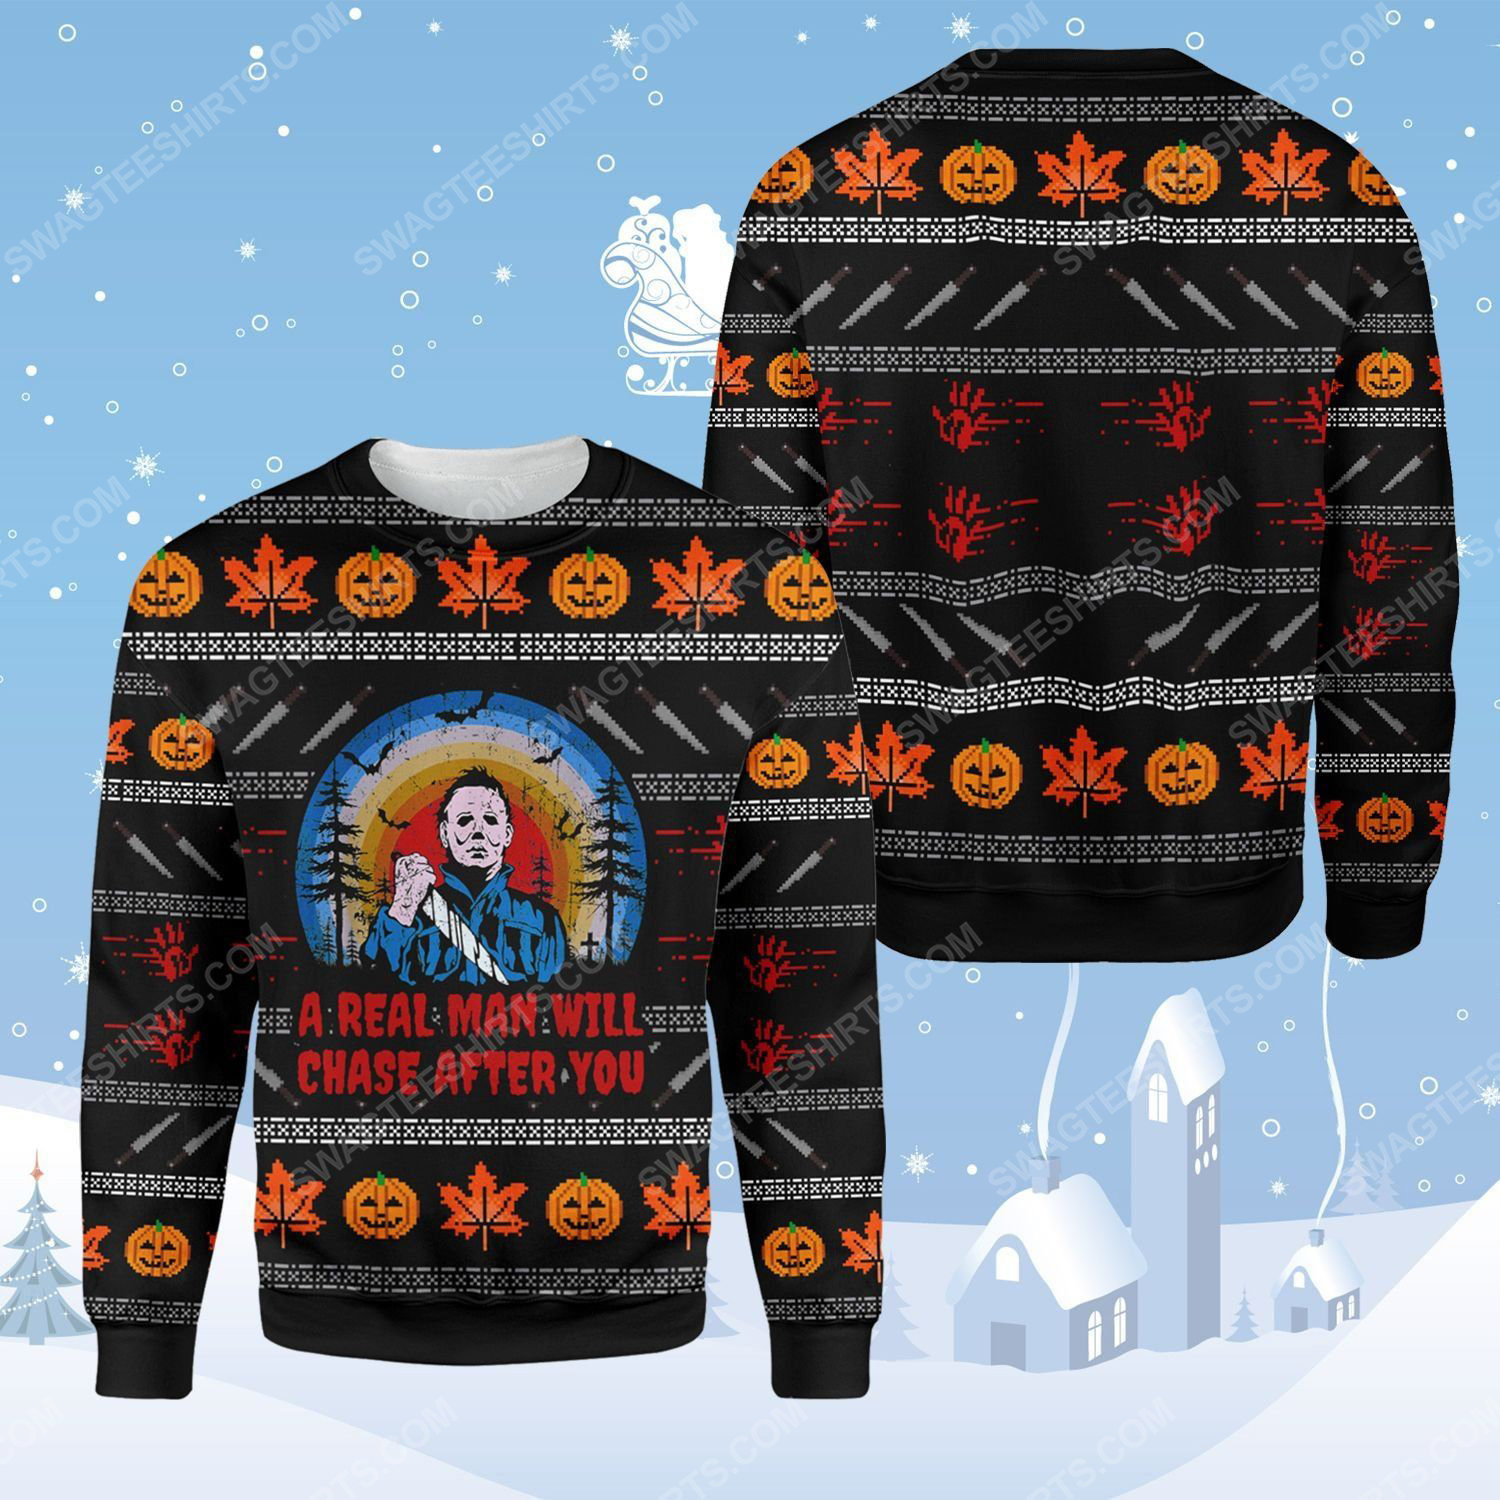 Michael myers a real man will chase after you ugly christmas sweater